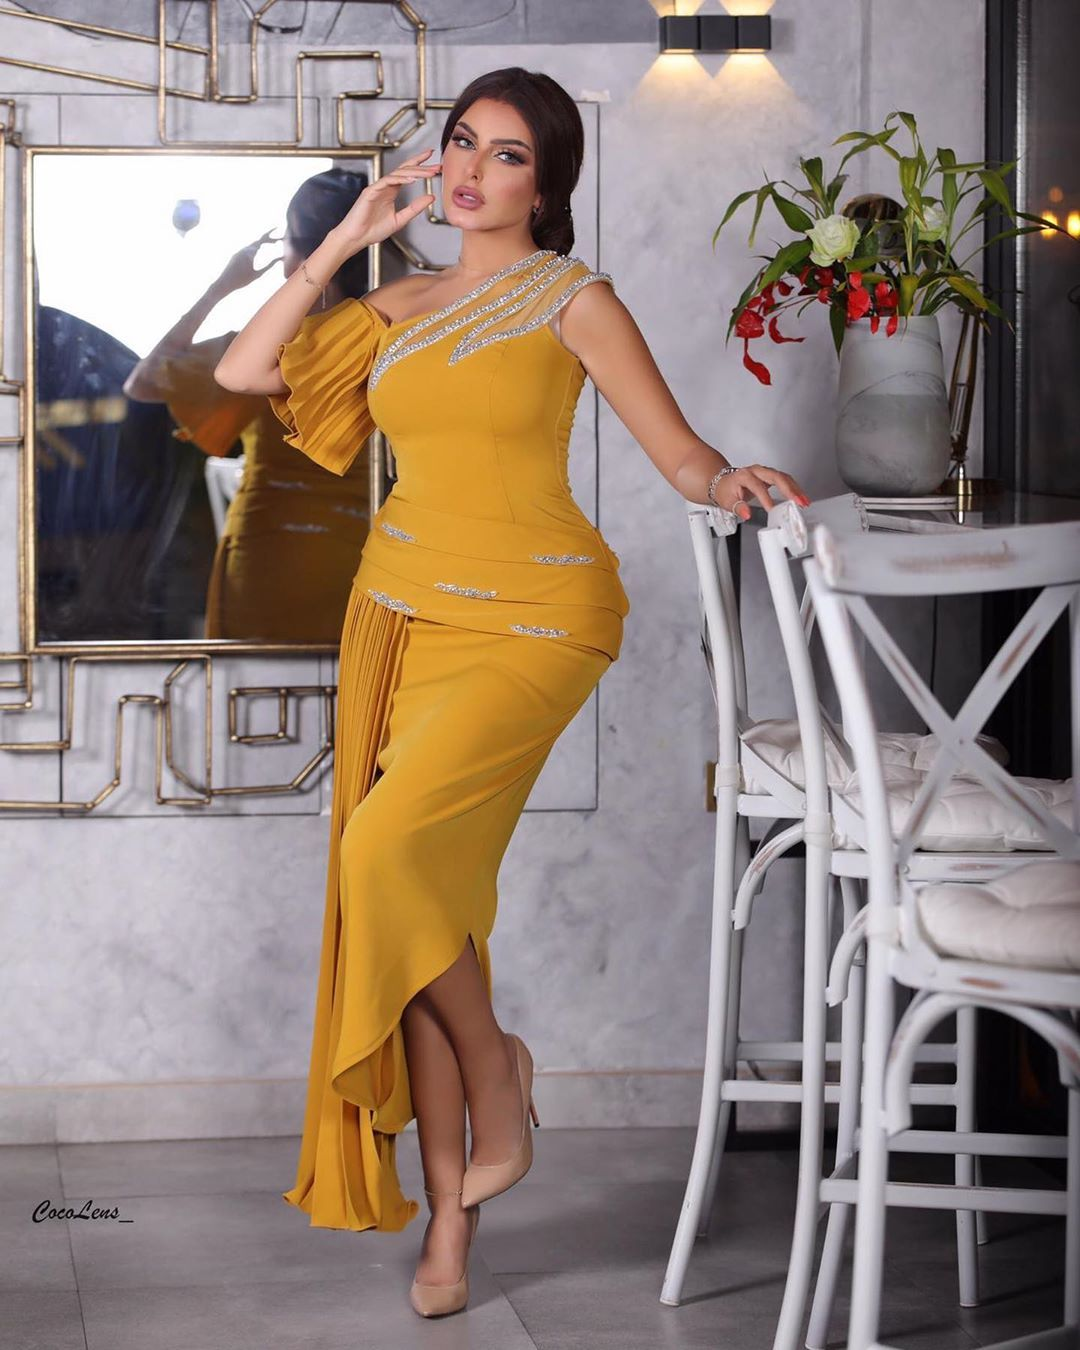 1 789 Mentions J Aime 79 Commentaires حسابات المصممين Joooore66 Sur Instagram Evening Dresses Short Prom Dresses Yellow Evening Gowns With Sleeves